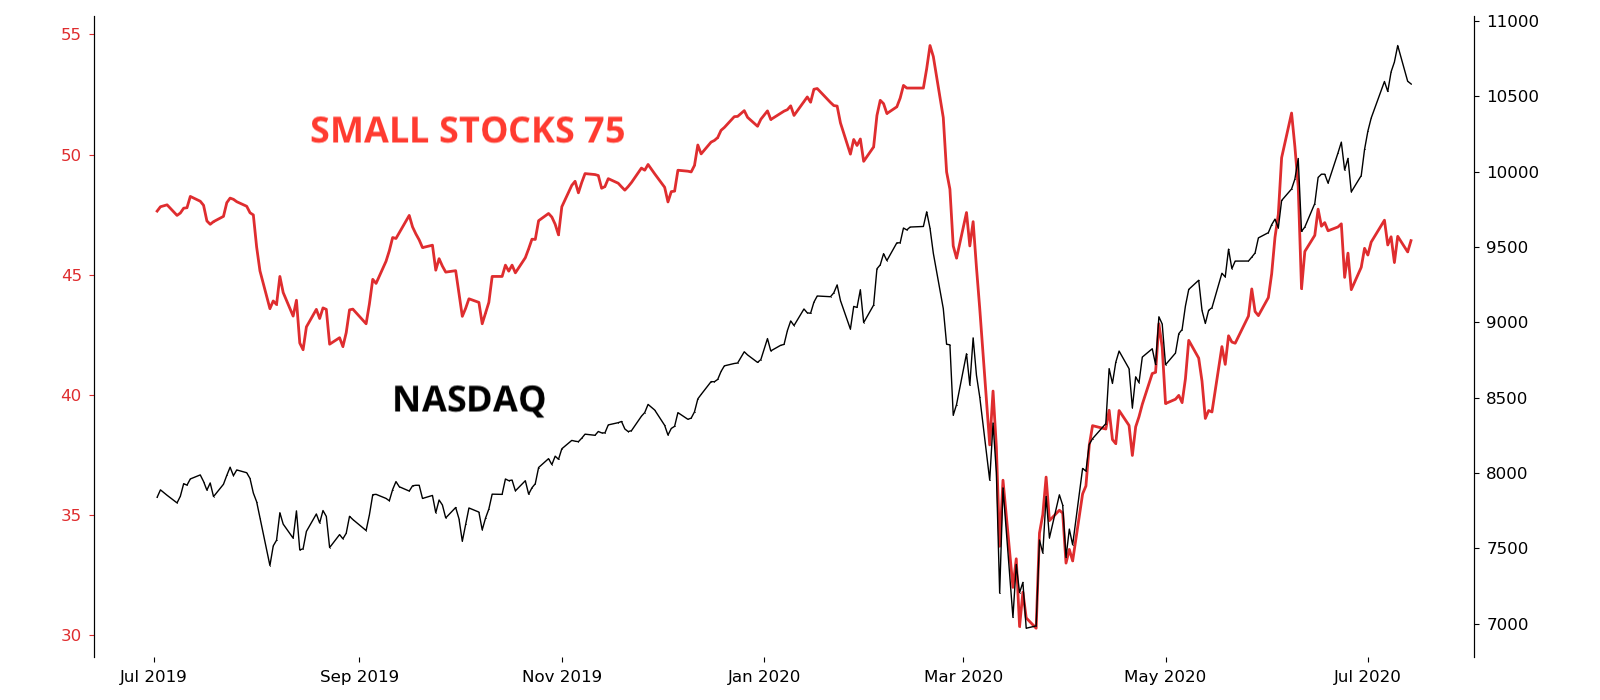 Alternative Measures of the Same Stock Market_07-15-20_graphic2.png